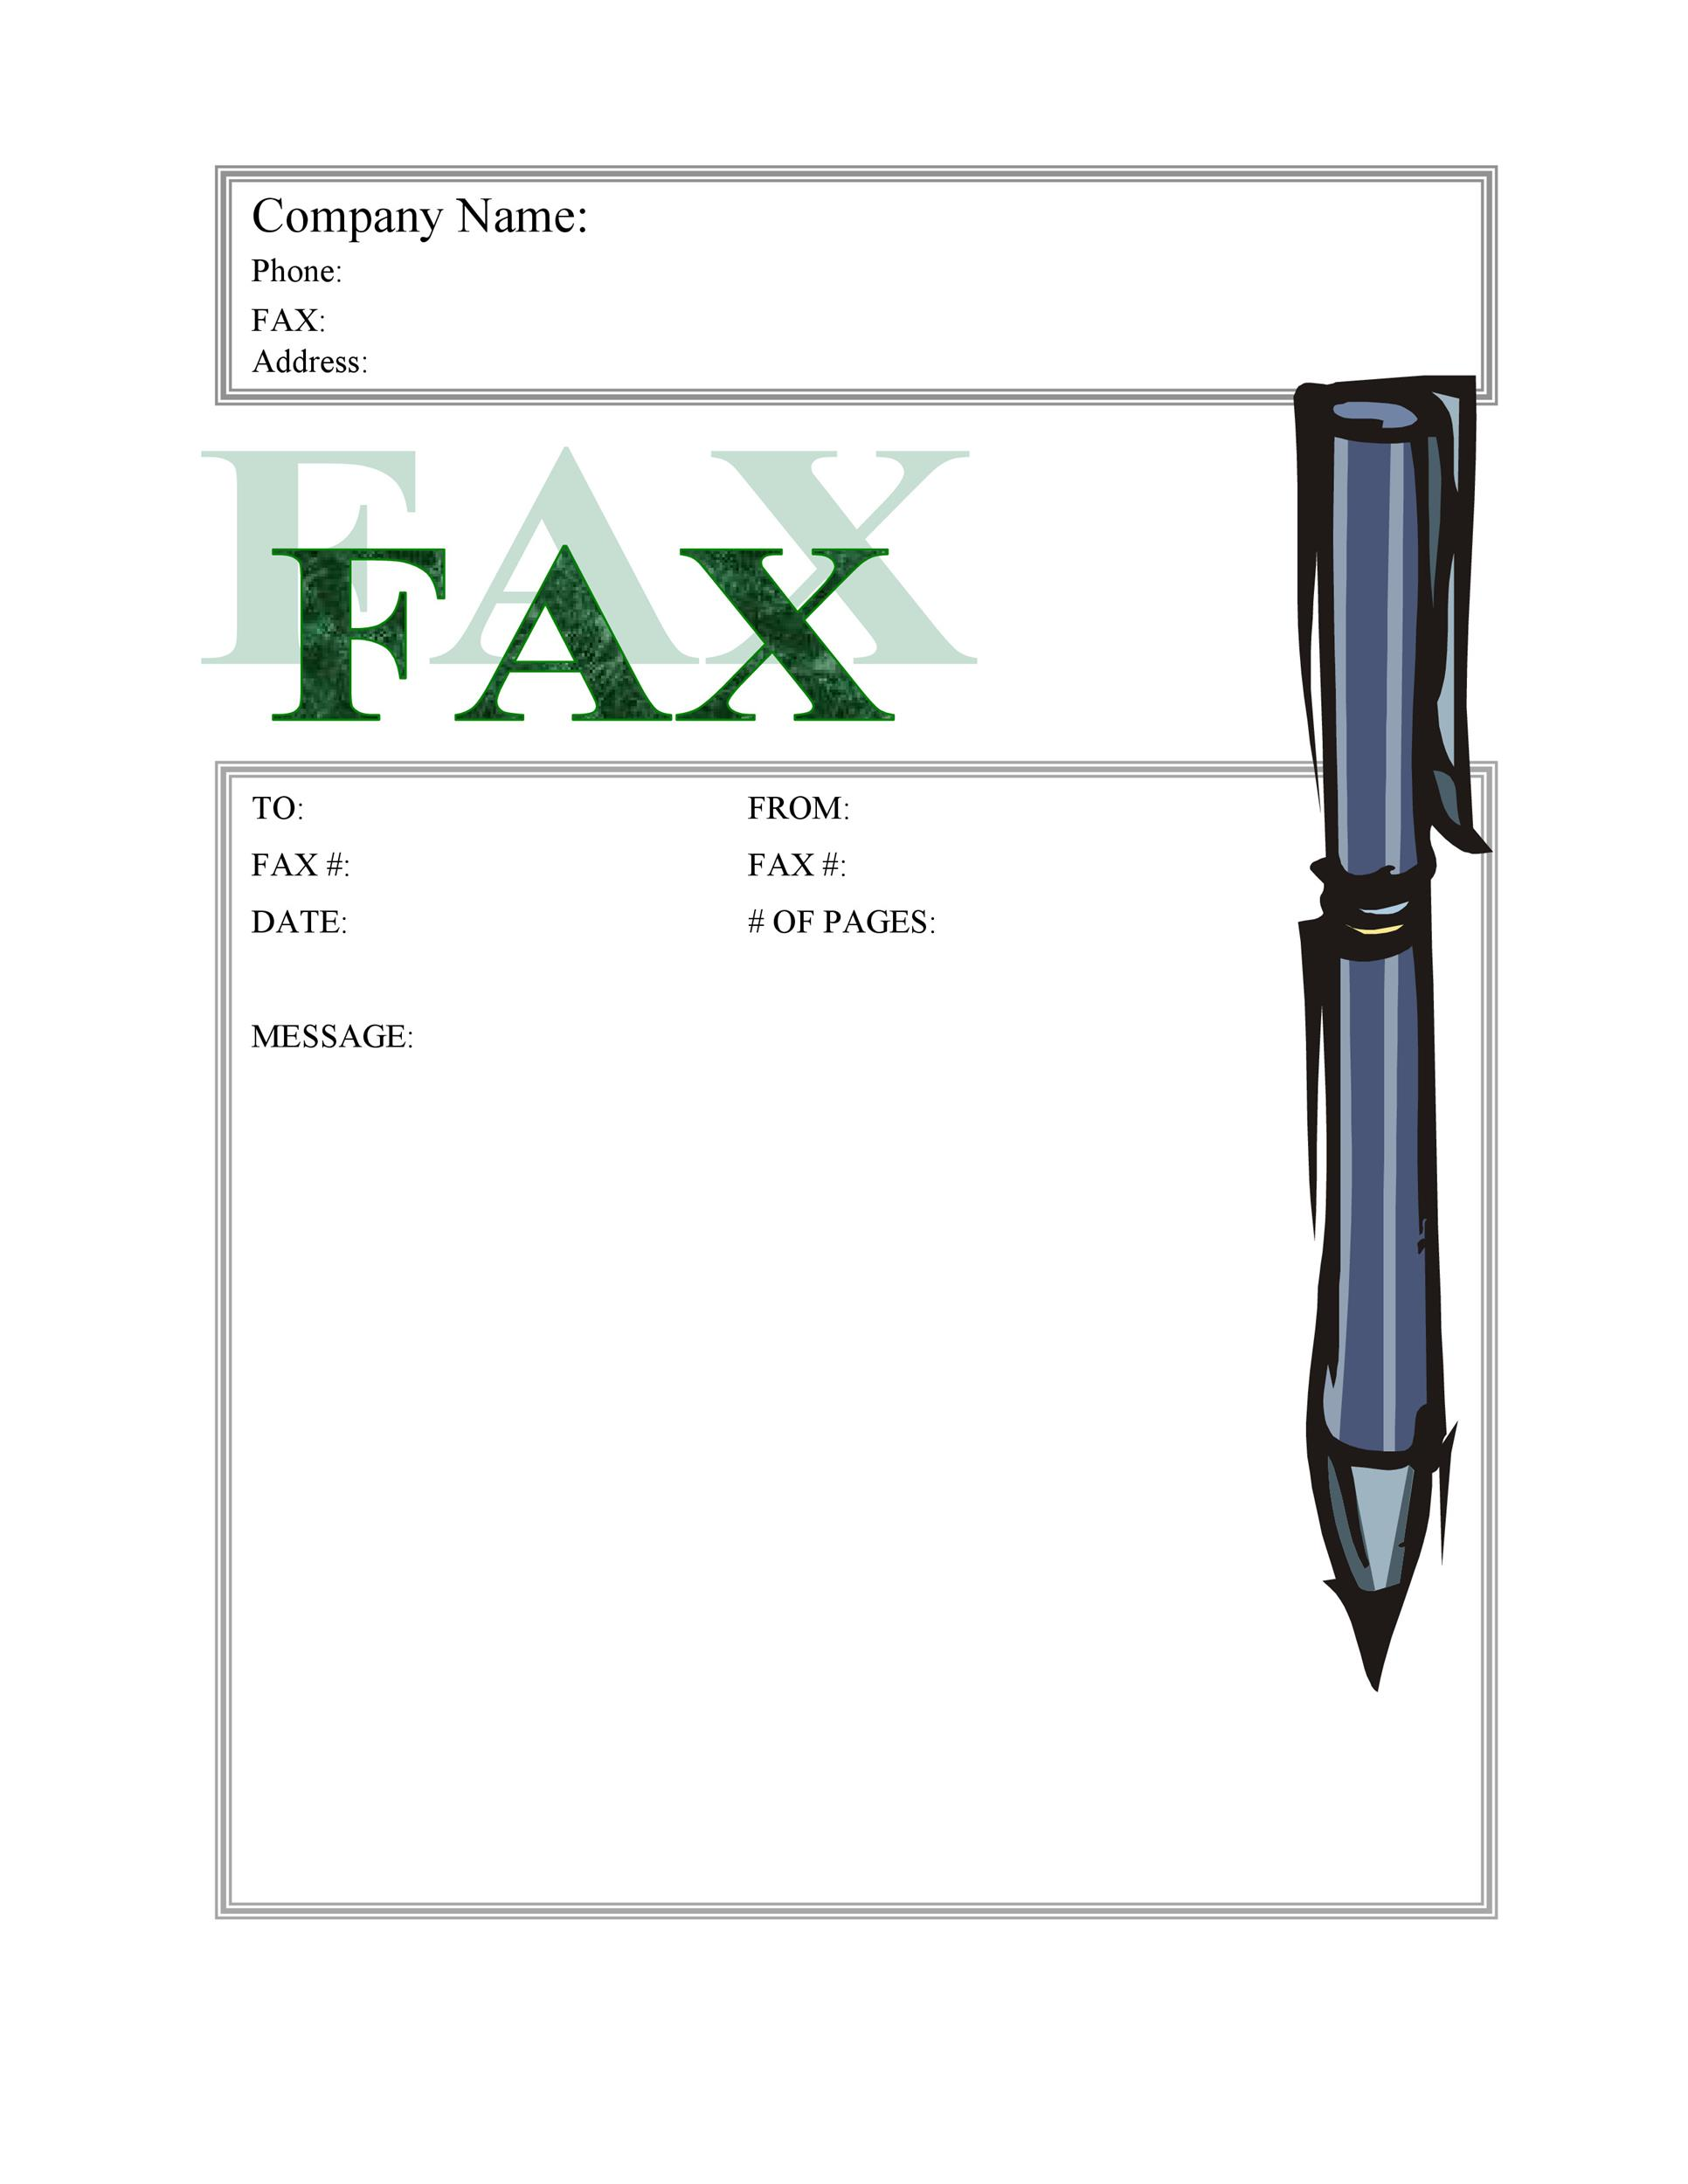 Free Fax Cover sheet Template 14